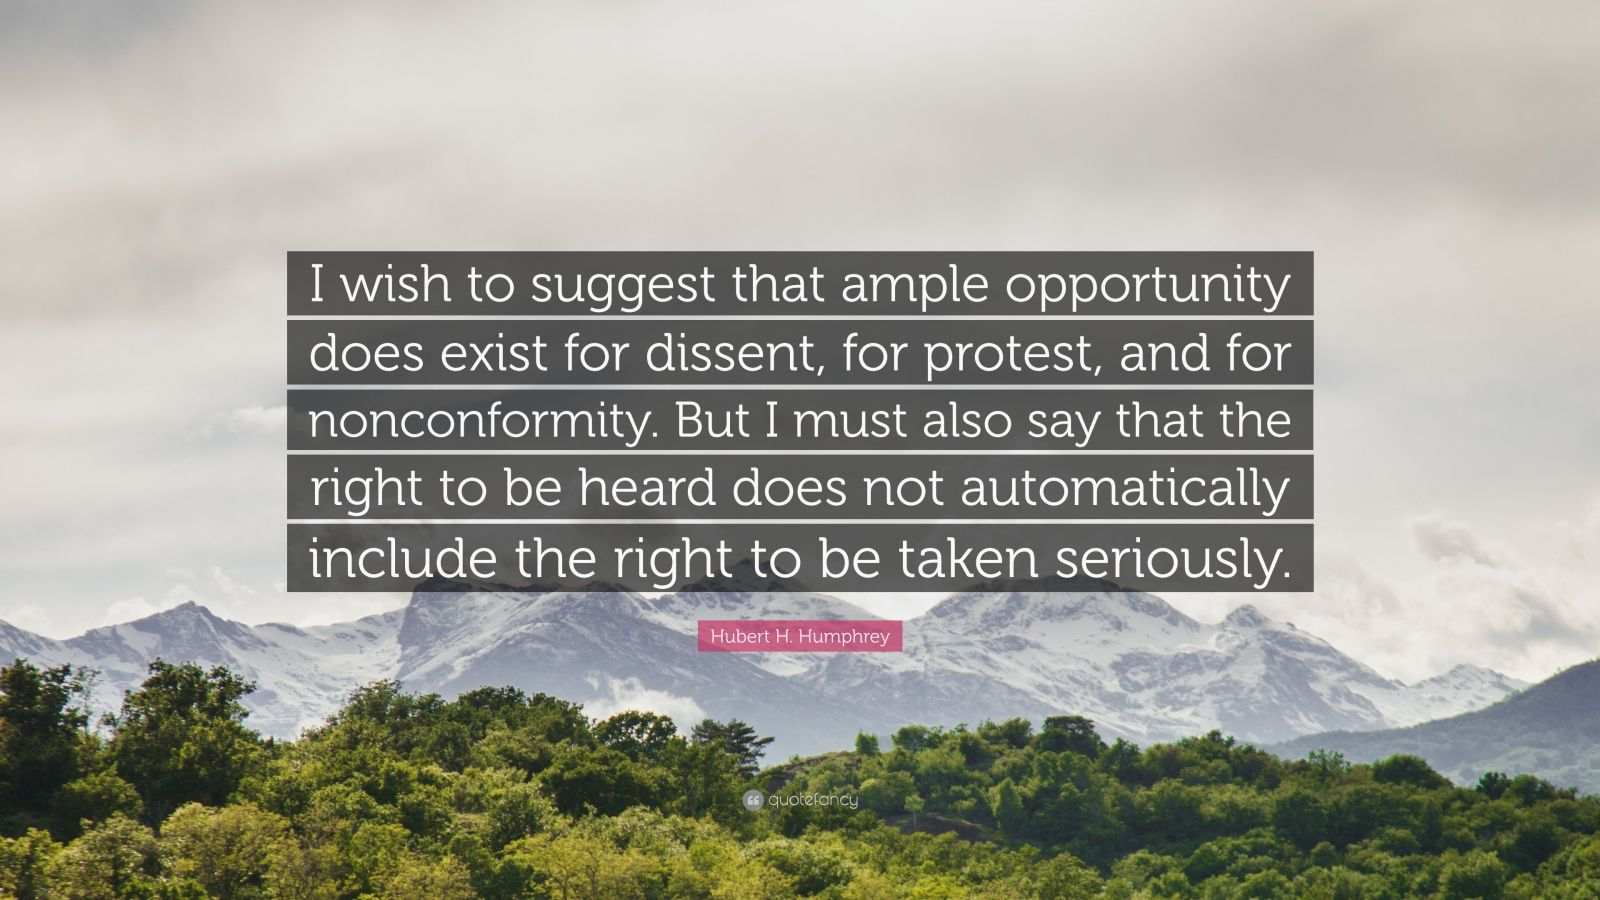 """Hubert H. Humphrey Quote: """"I wish to suggest that ample opportunity does exist for dissent, for protest, and for nonconformity. But I must also say that the right to be heard does not automatically include the right to be taken seriously."""""""